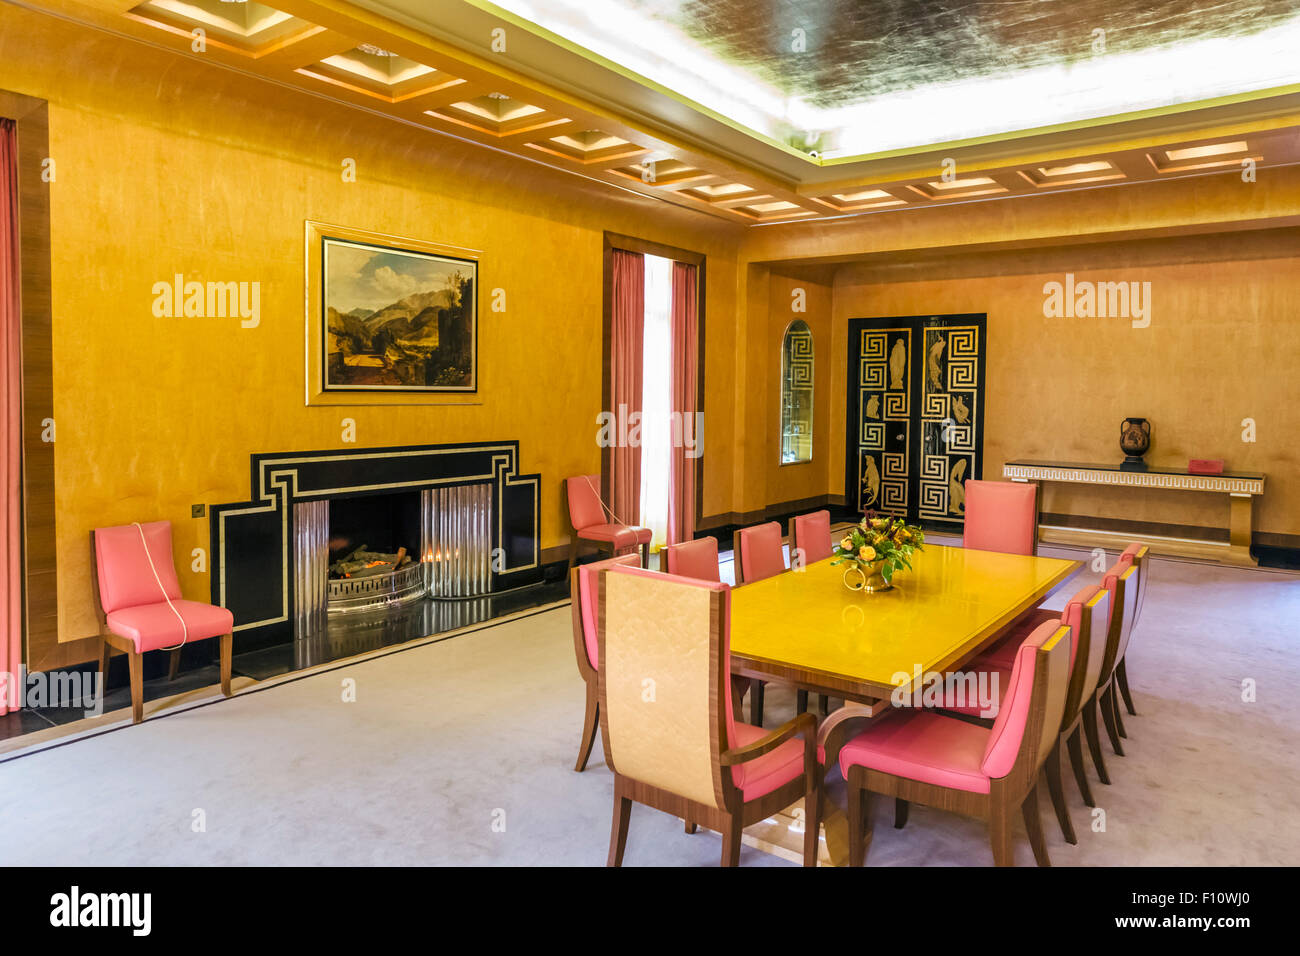 art deco dining room in eltham palace, the former home of stephen